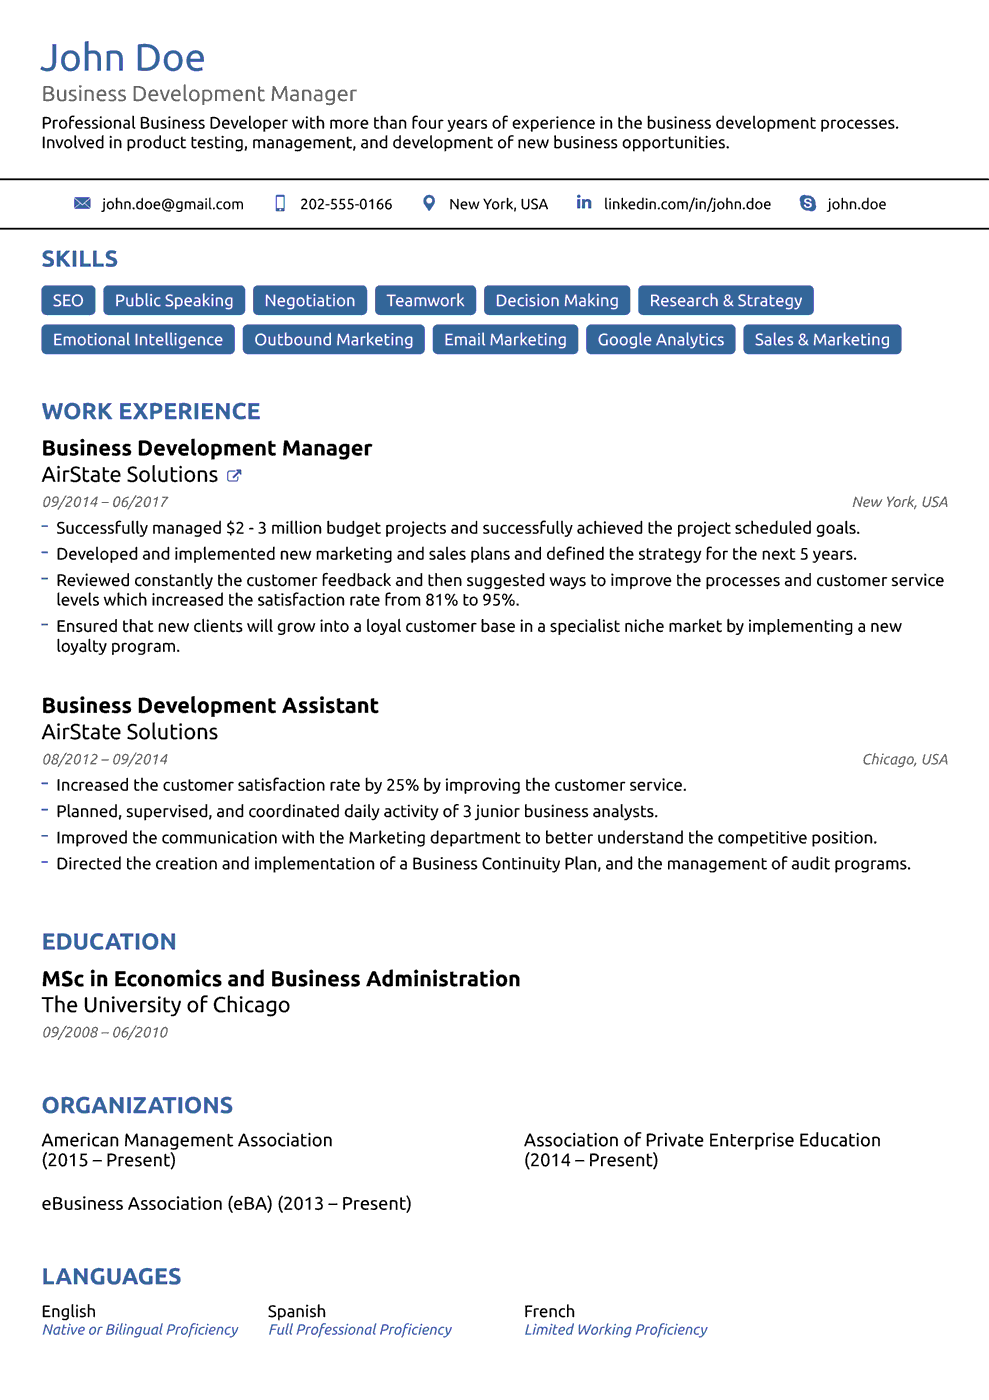 Free Sample Resume Templates | 2018 Professional Resume Templates As They Should Be 8